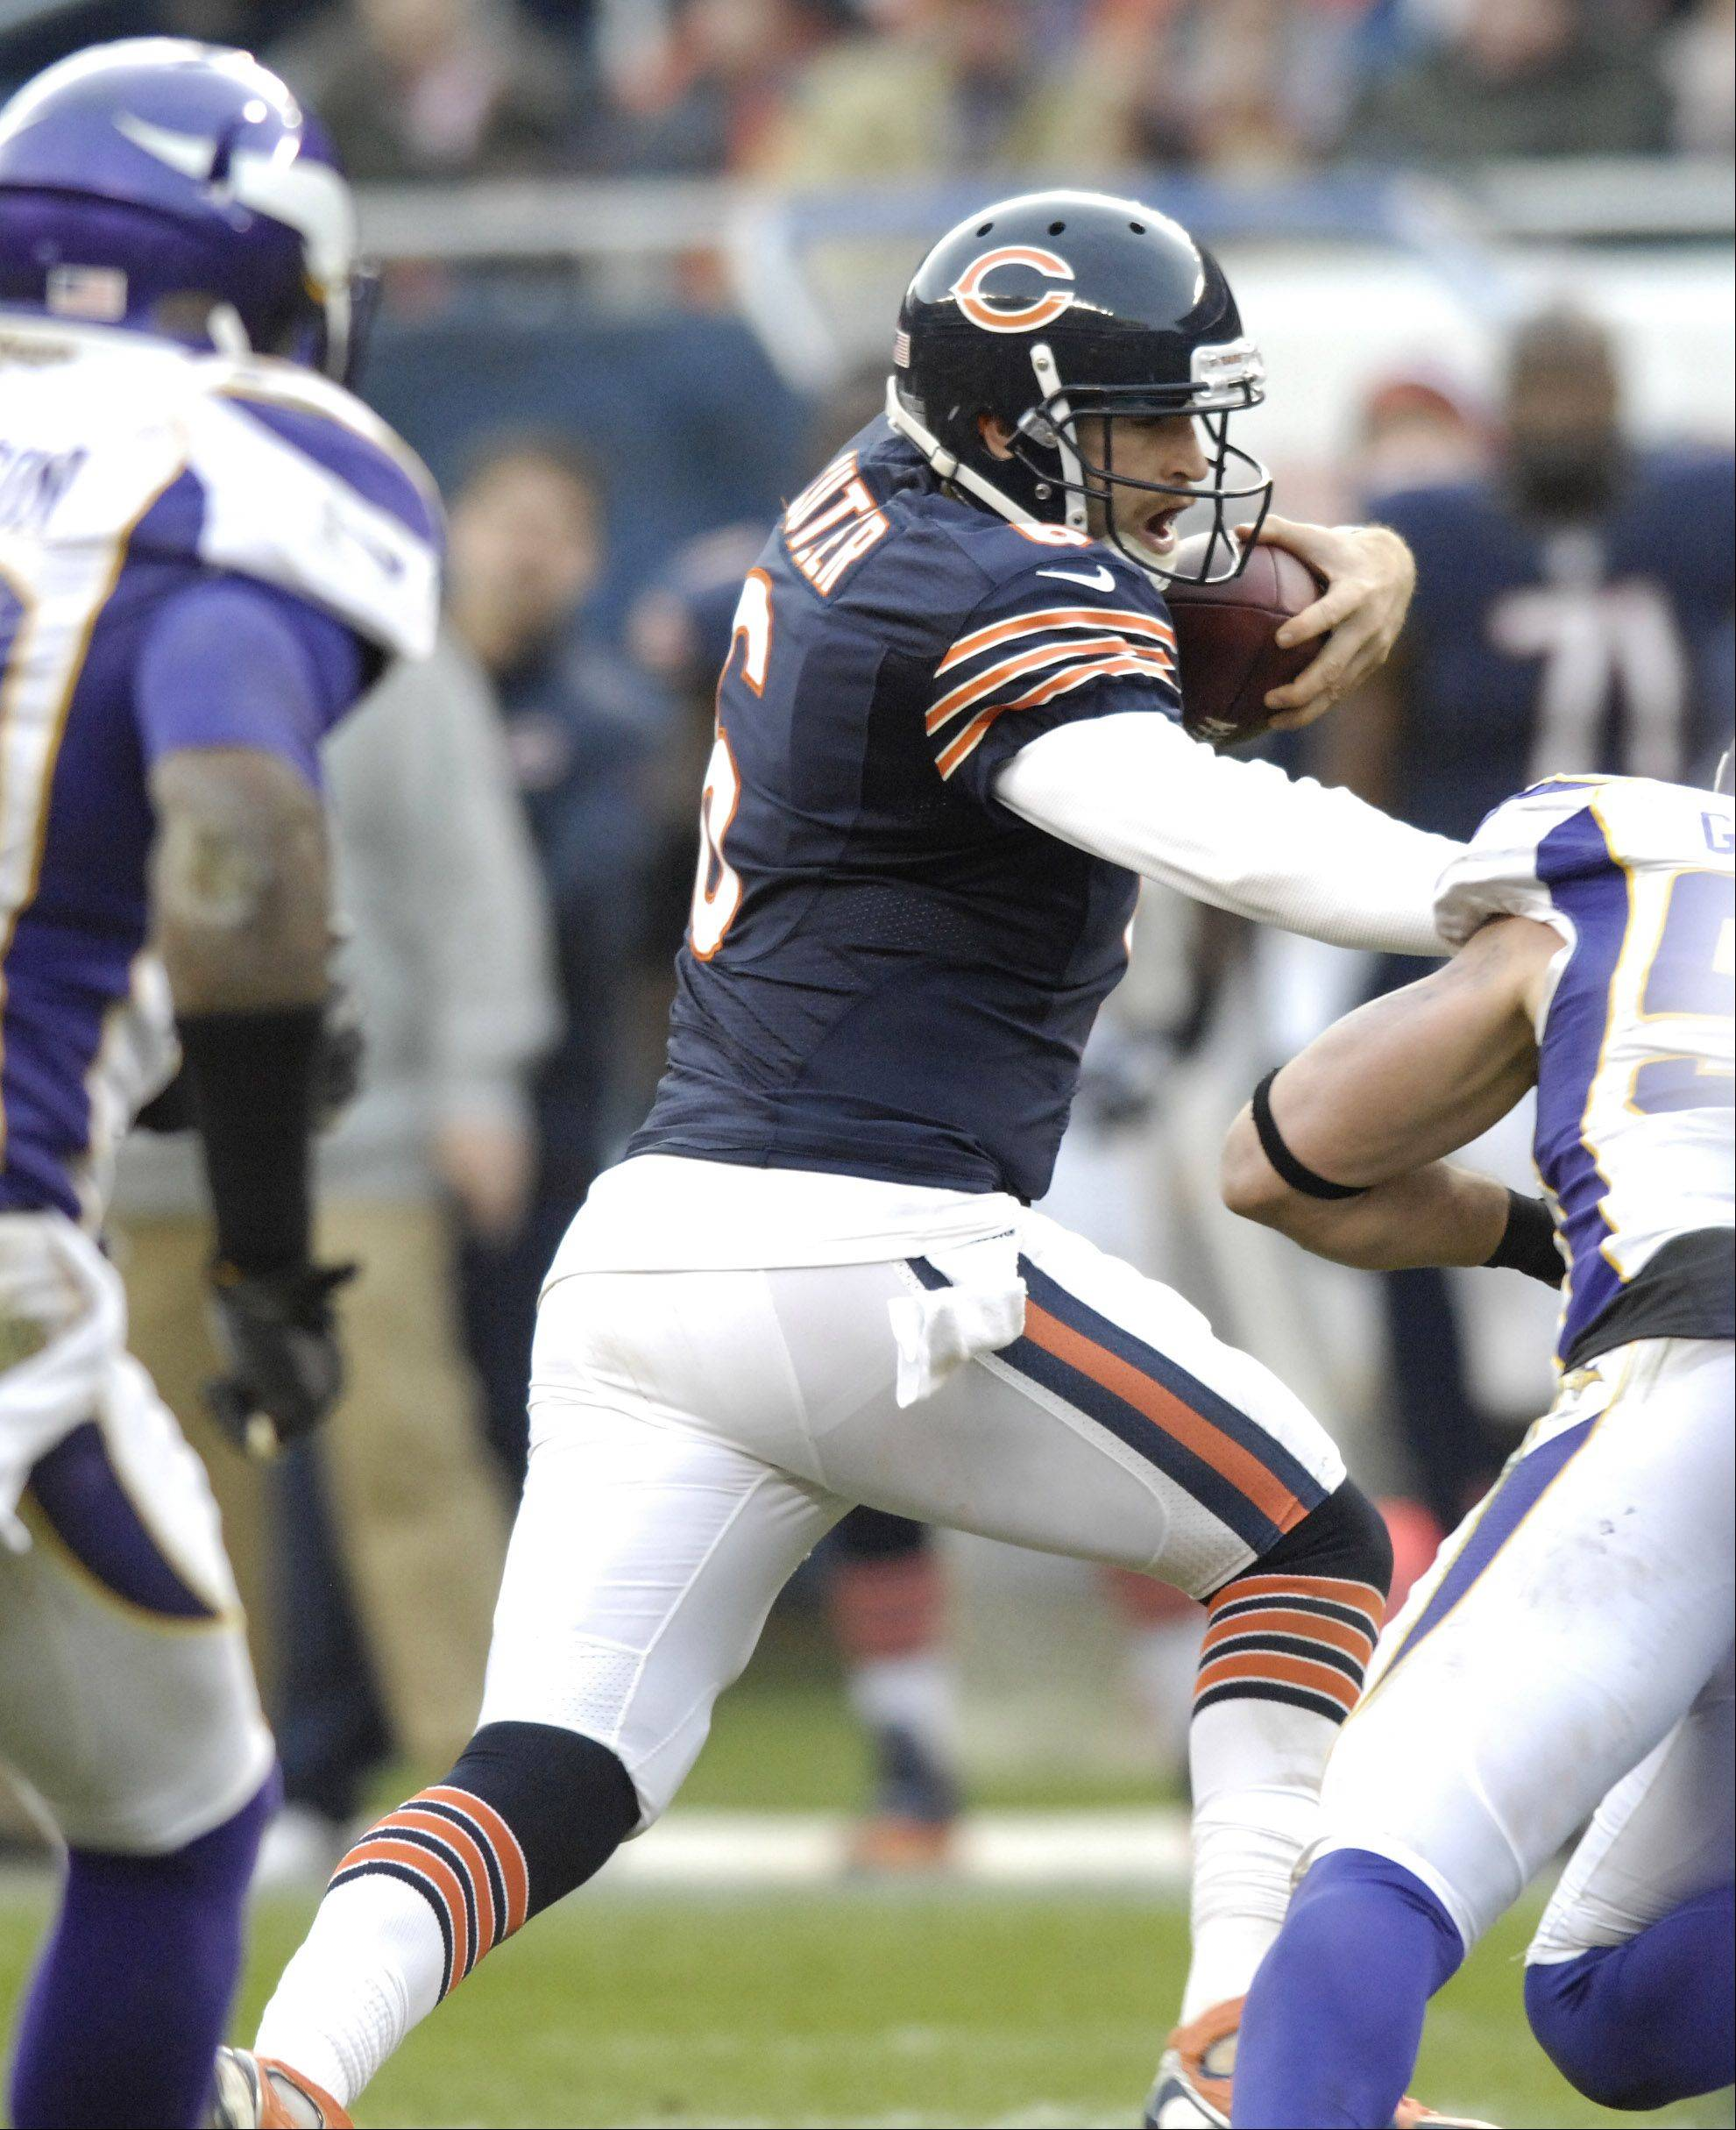 Chicago Bears quarterback Jay Cutler carries the ball against the Minnesota Vikings at Soldier Field Sunday.